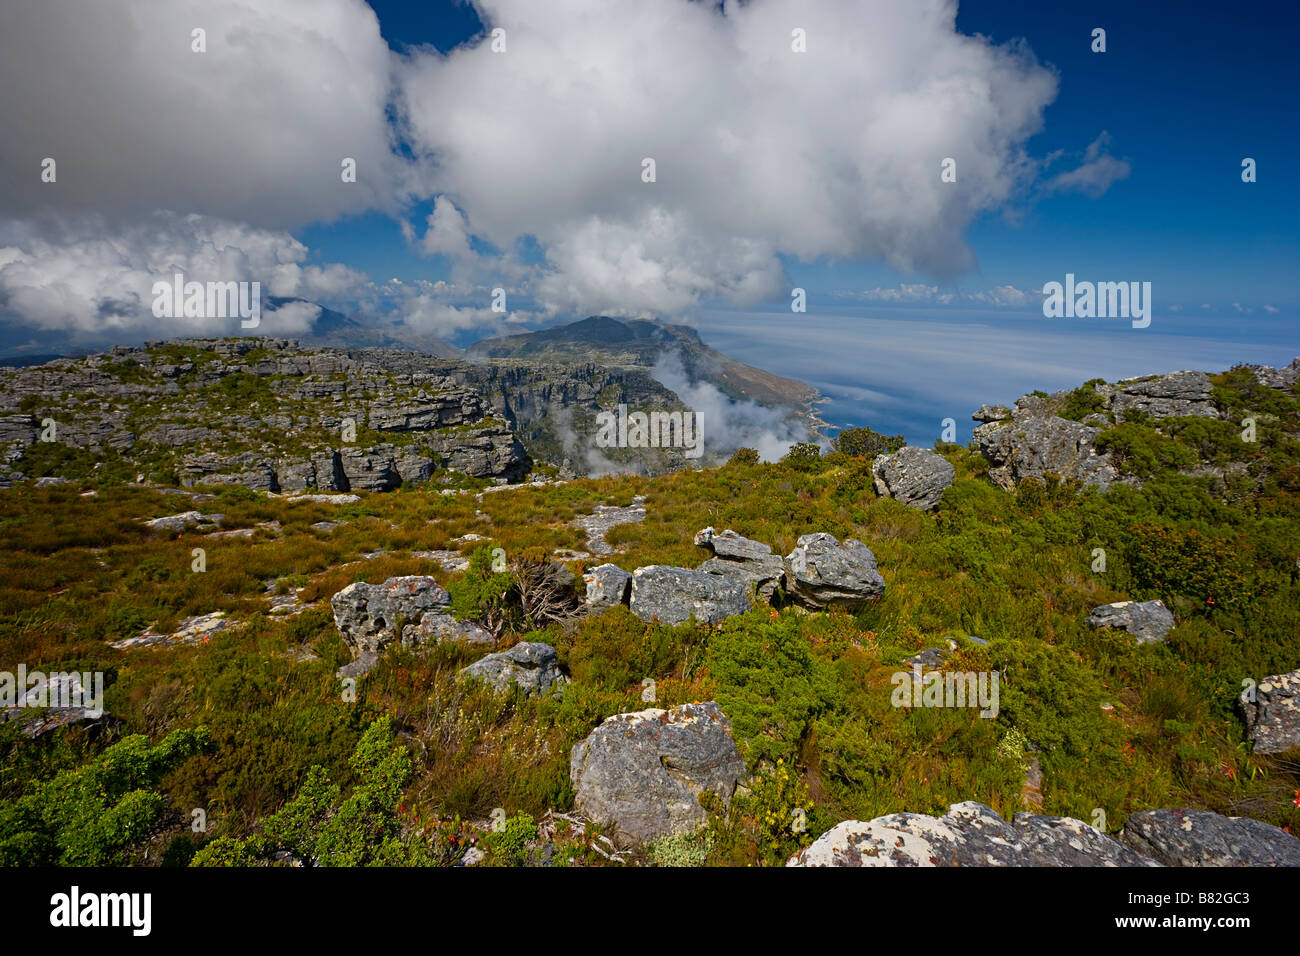 scenic view looking down from the top of table mountain onto the sea towards Cape Town, South Africa - Stock Image